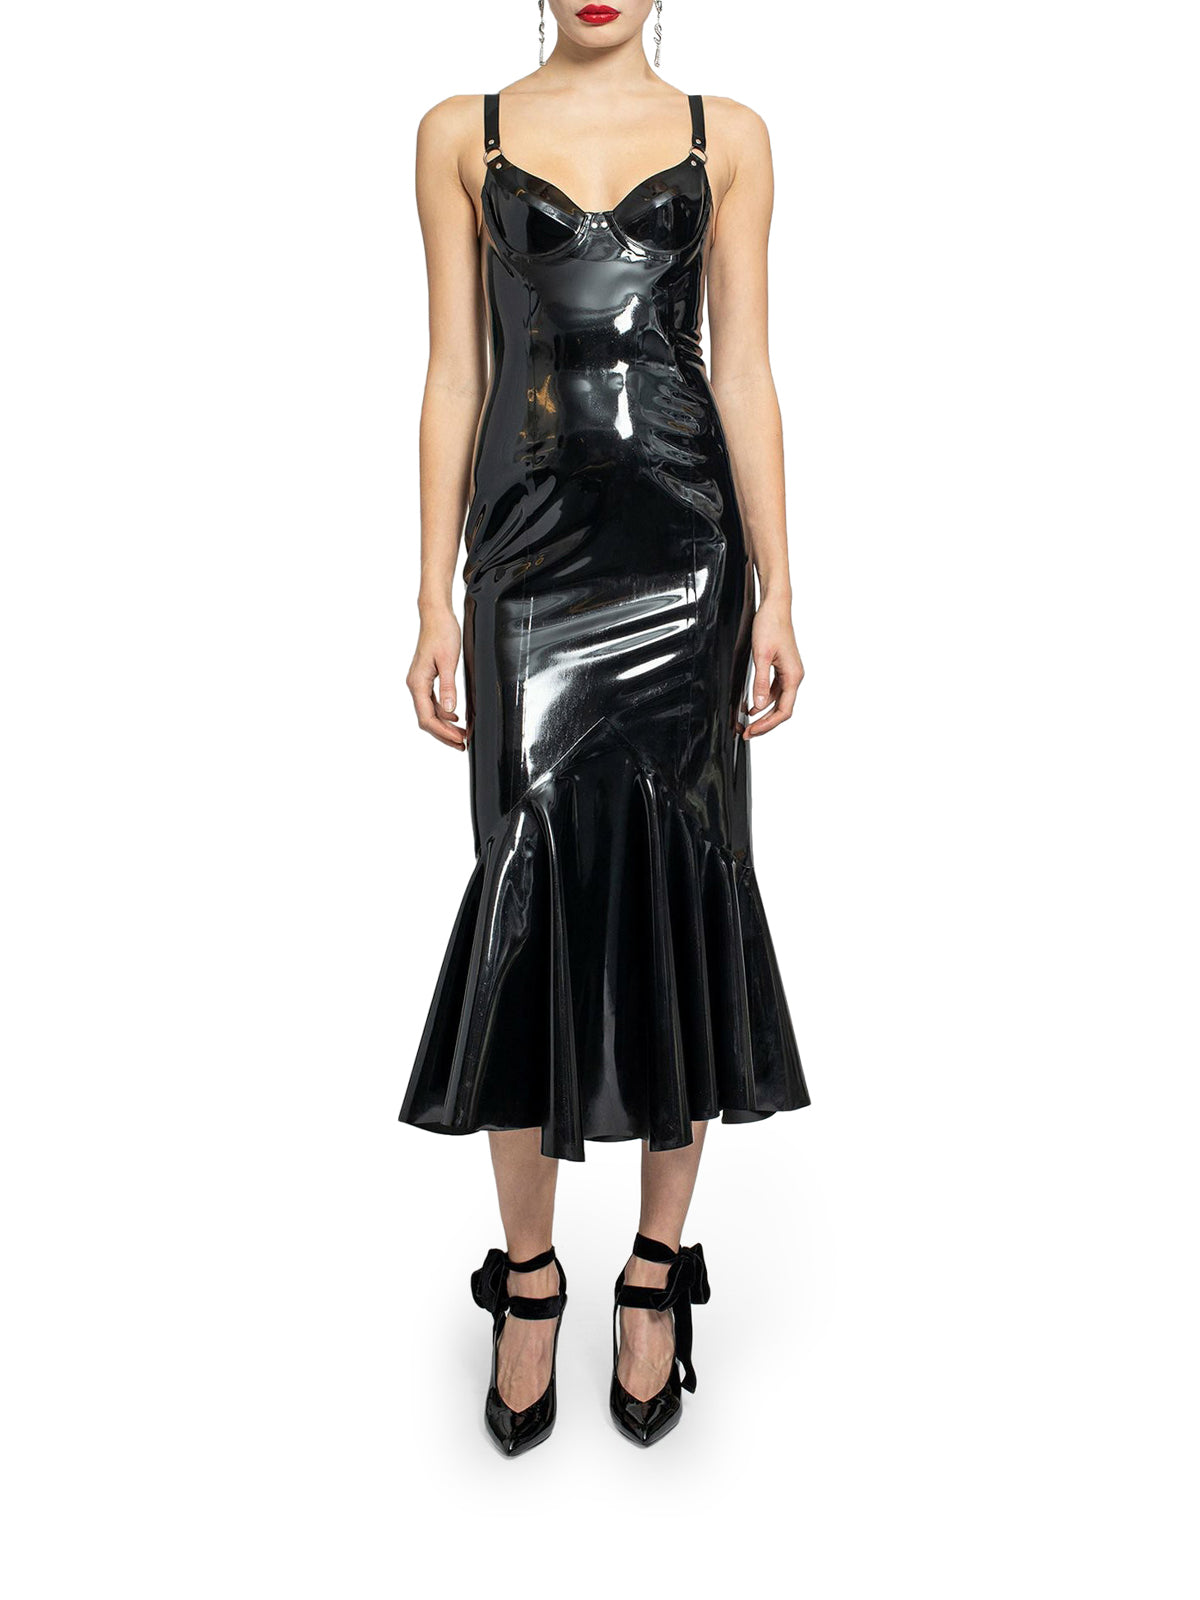 Black mermaid bustier dress in latex